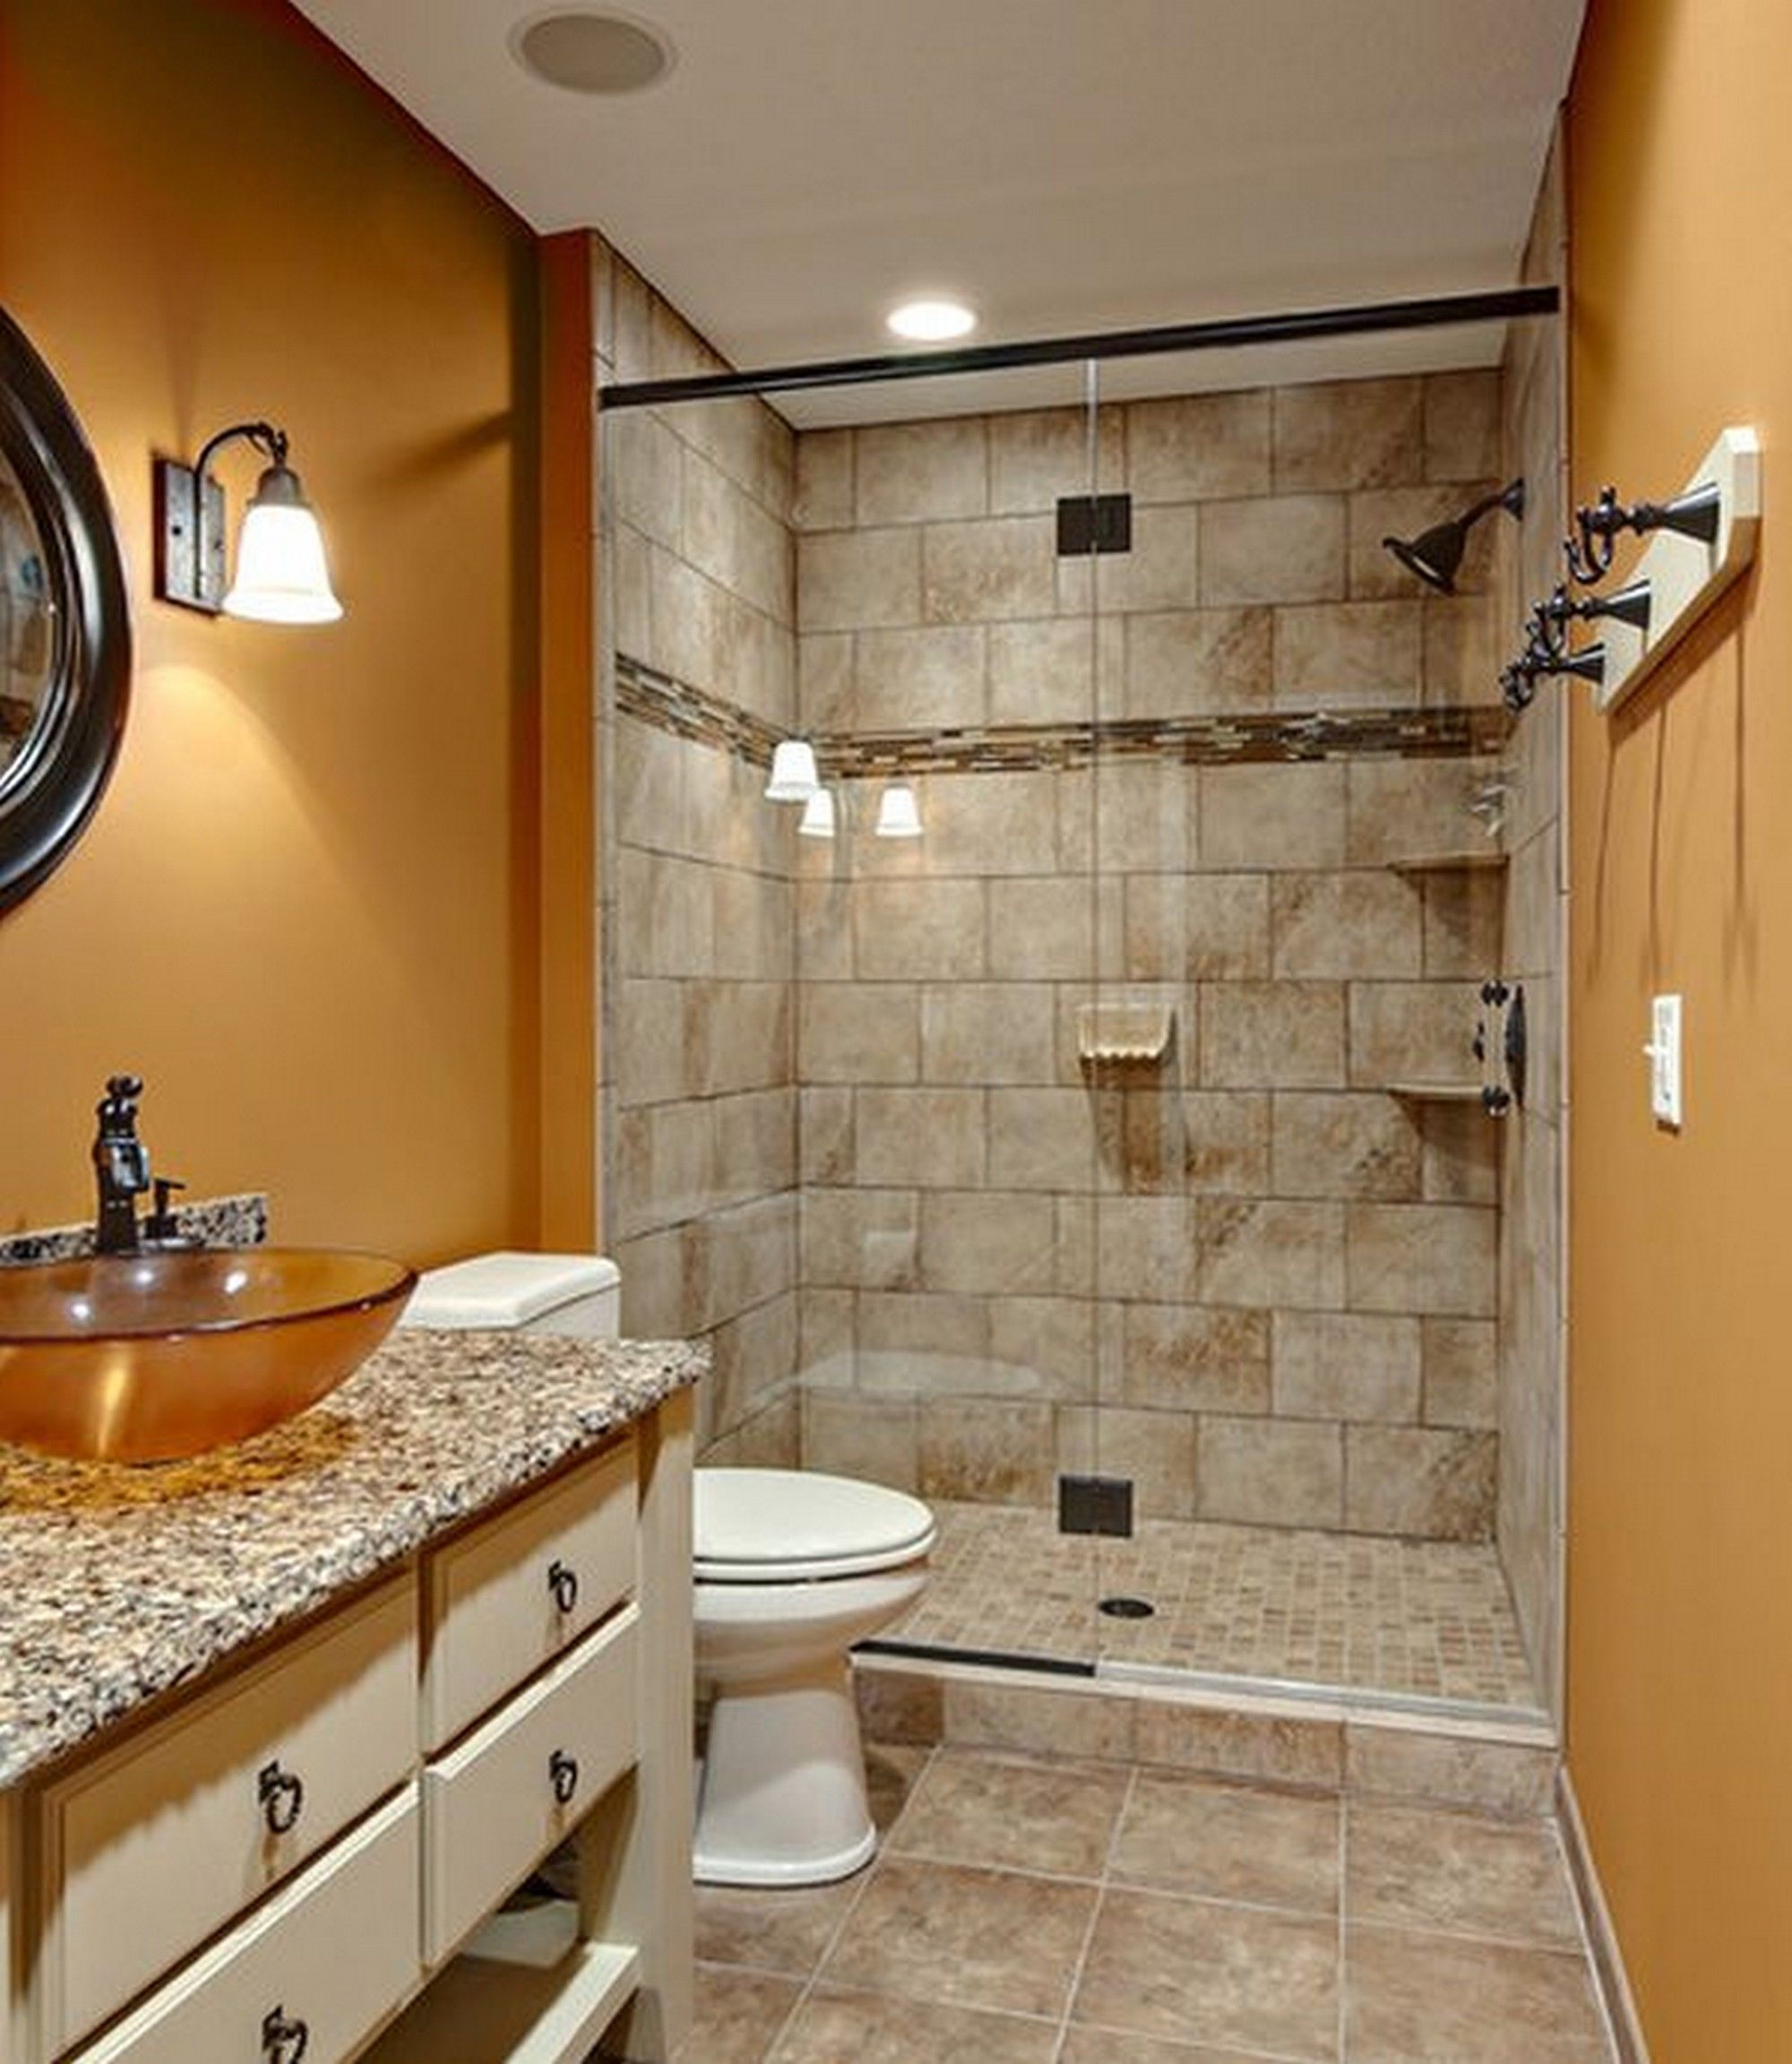 Attirant Beautiful Bathroom Design With Walk In Shower